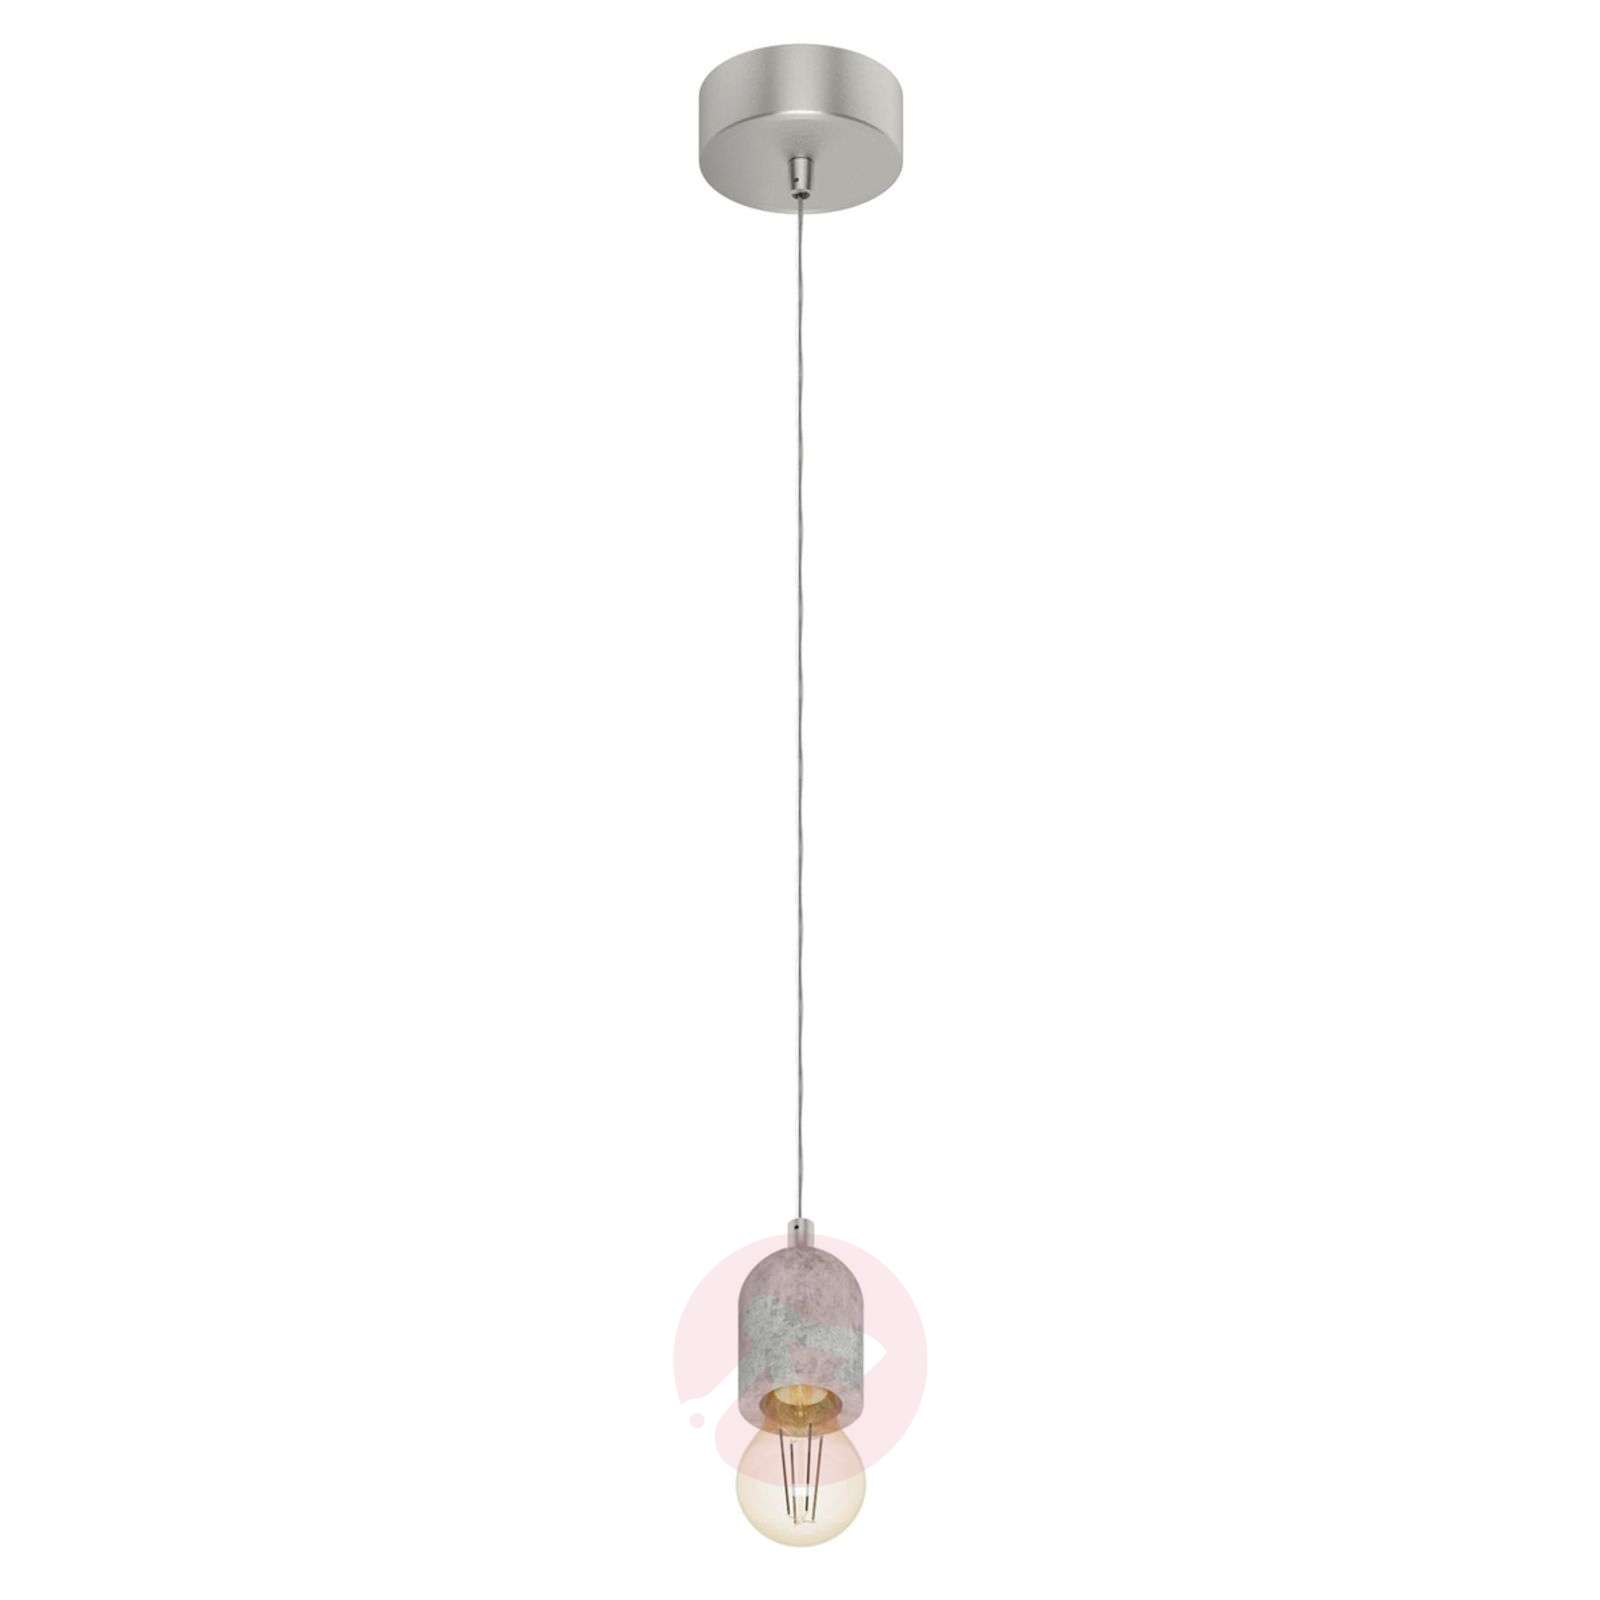 Puristic Silvares hanging light-3031816-01